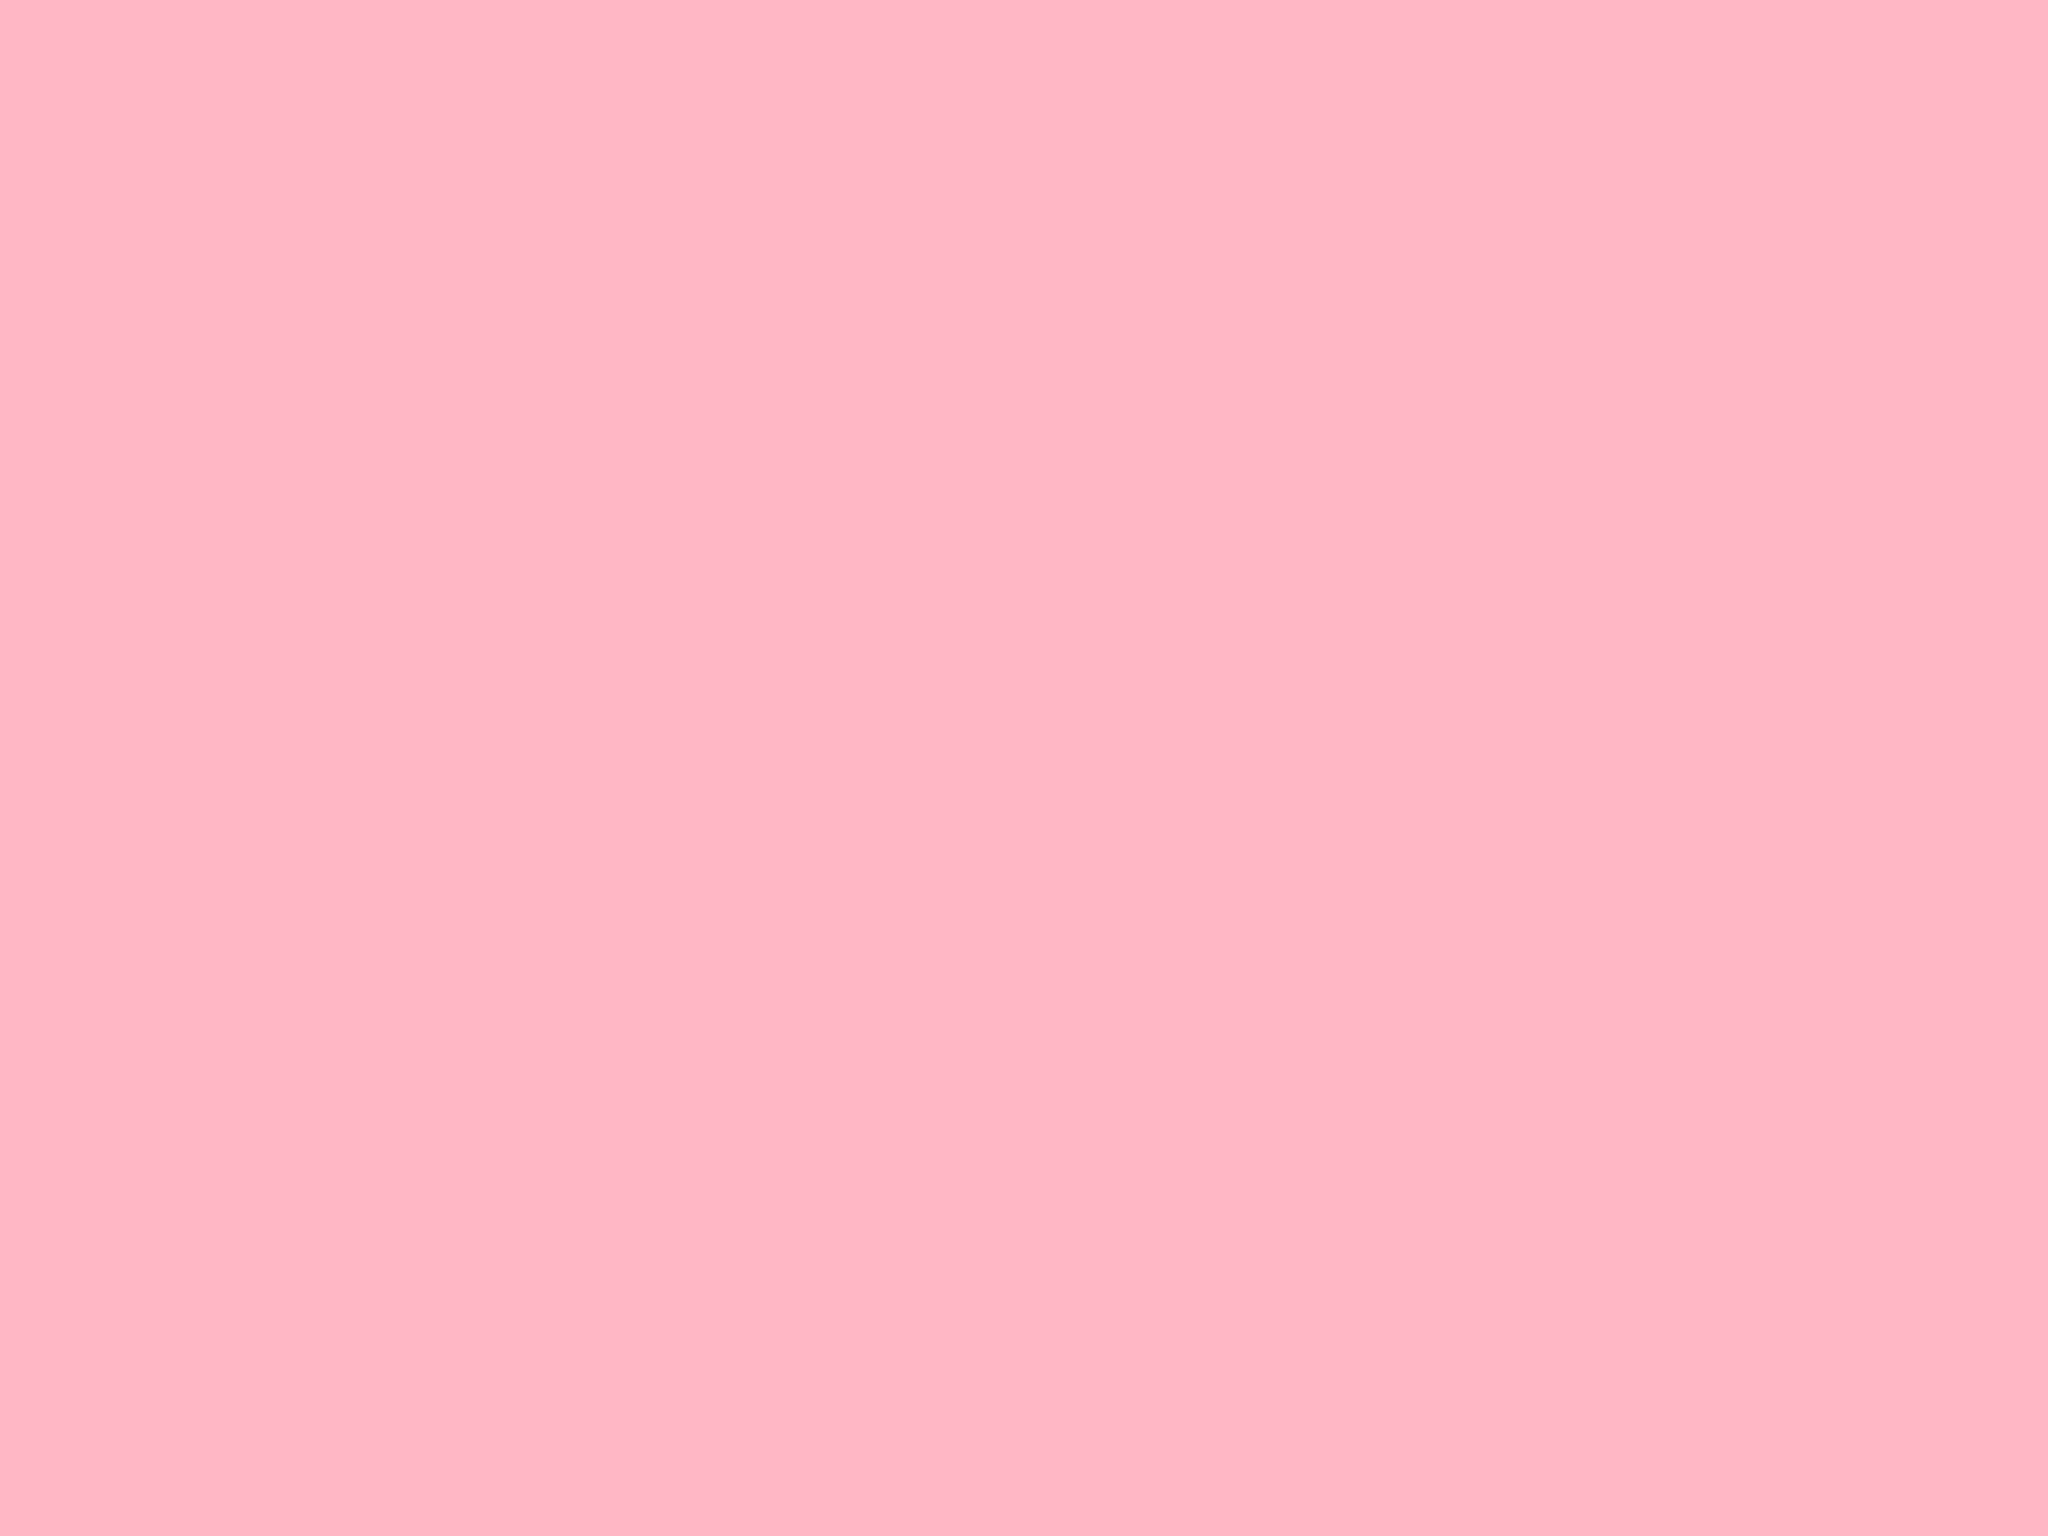 2048x1536 Cherry Blossom Pink Solid Color Background